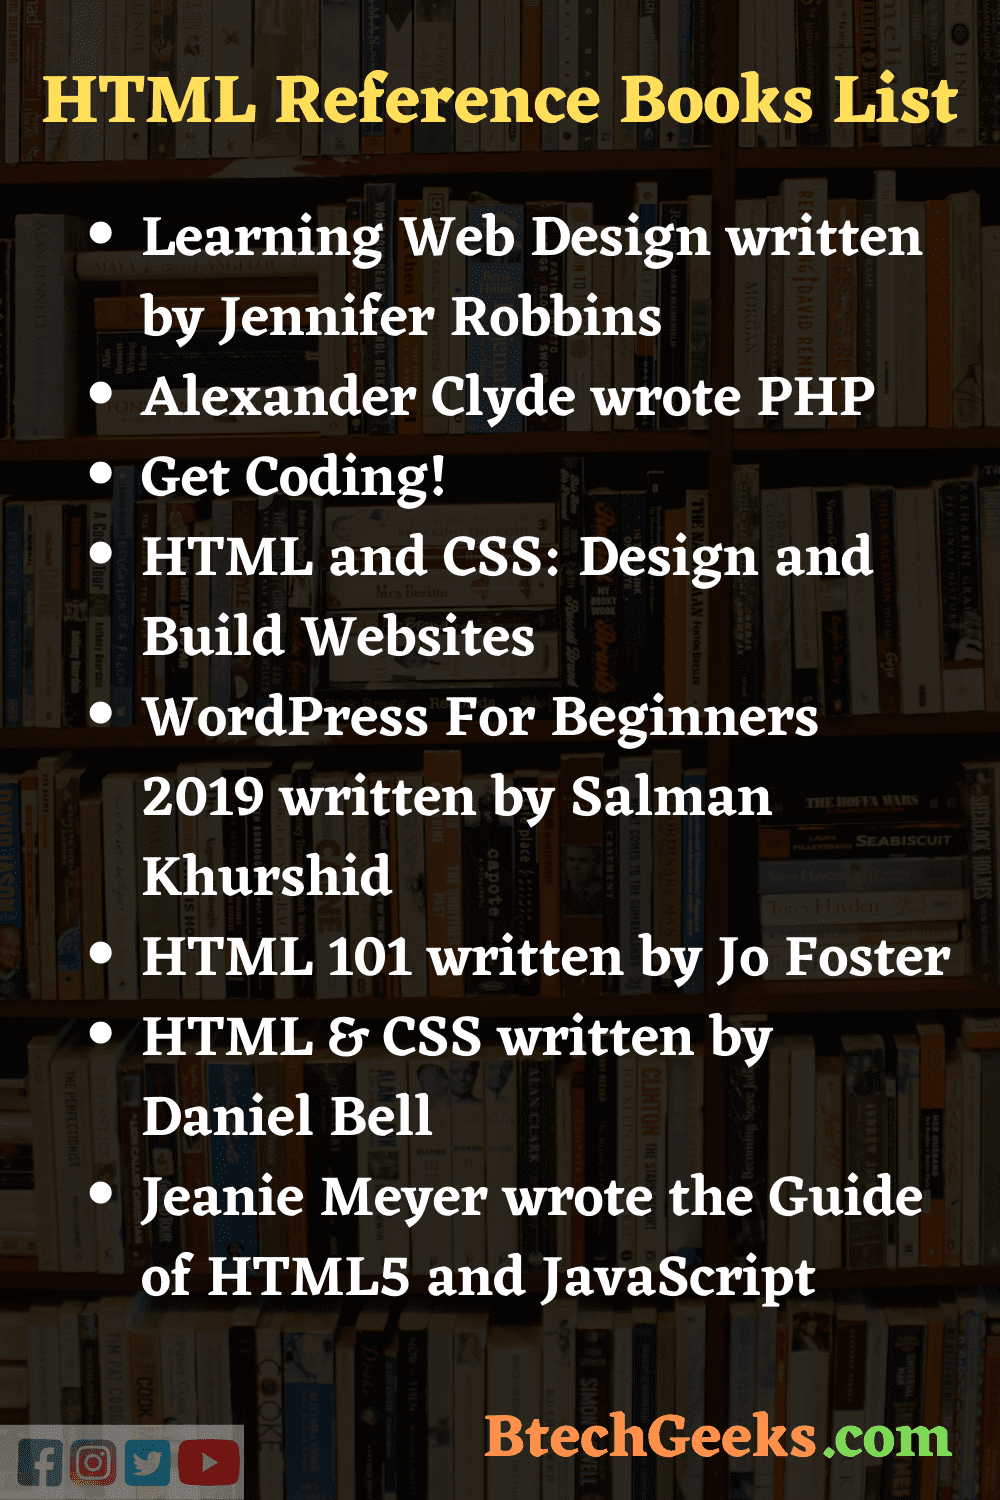 HTML Reference Books